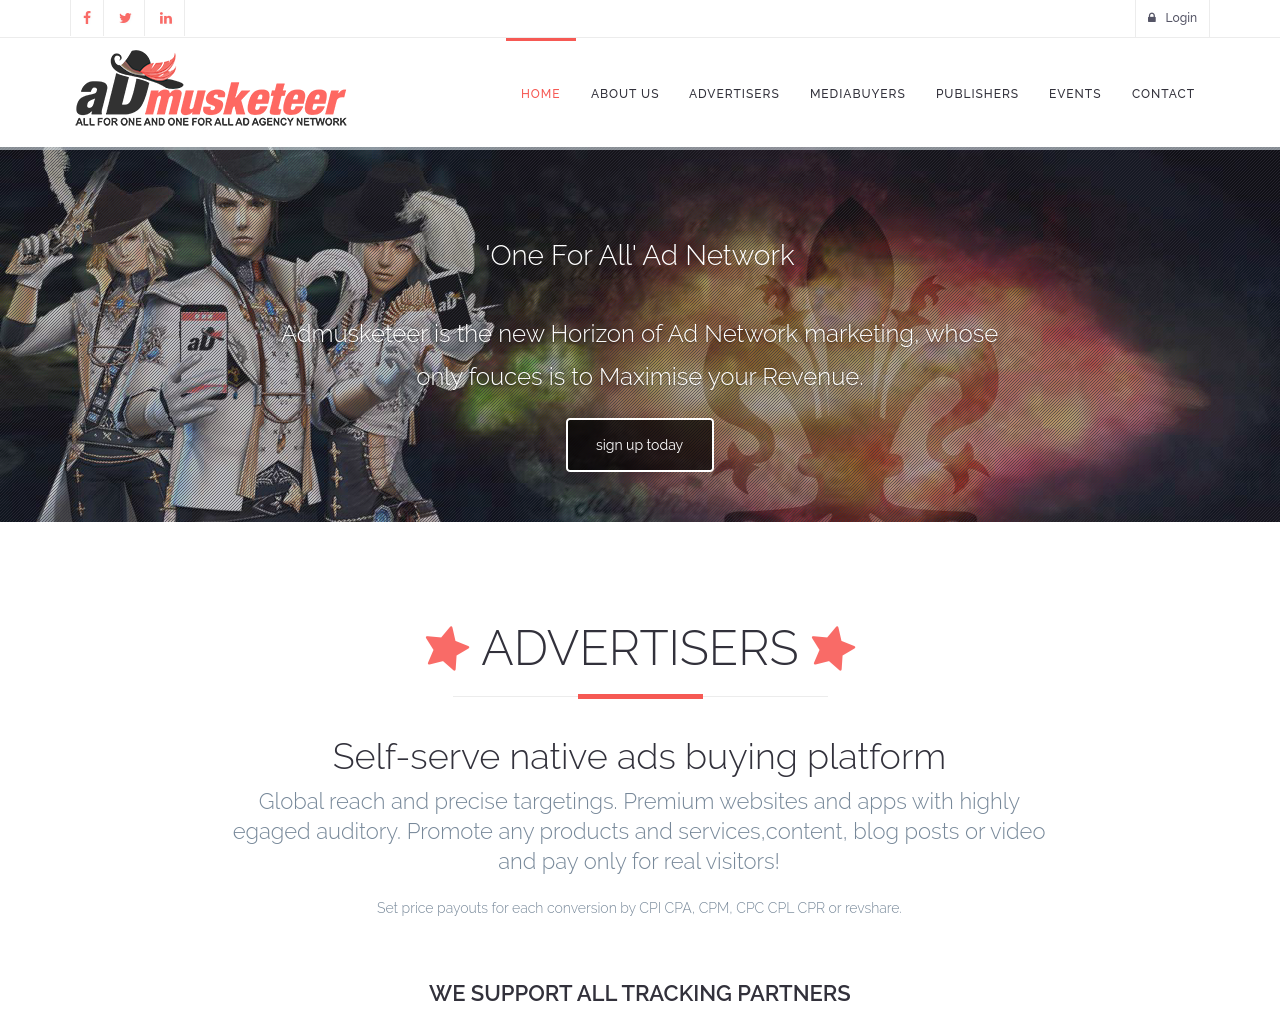 admusketeer-Advertising-Reviews-Pricing